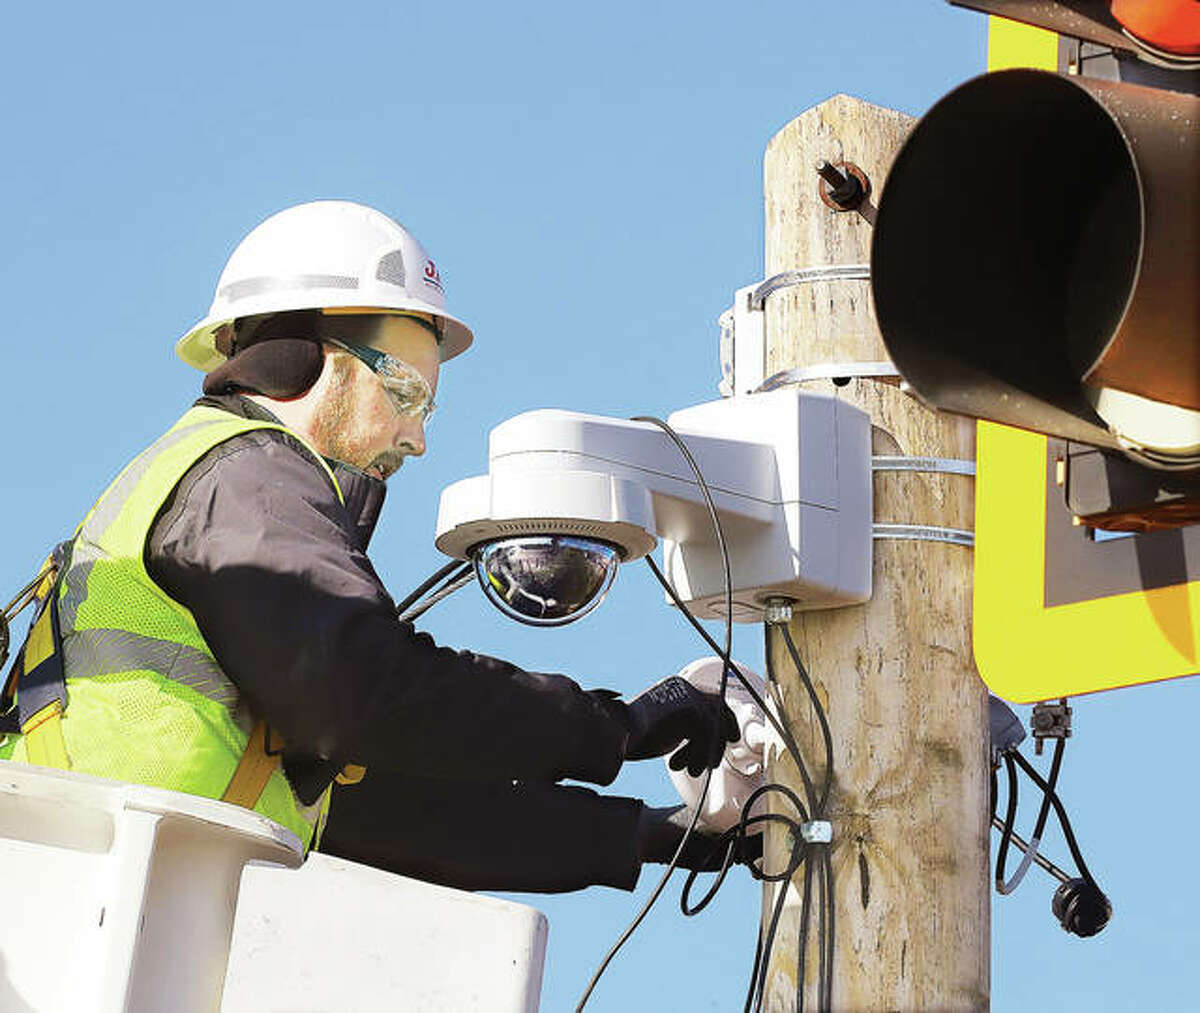 A J.F. Telecom employee wires up a camera on Landmarks Boulevard in December 2019 at the end of the Clark Bridge in Alton. More than 40 new license plate reader cameras are being considered in Madison County.